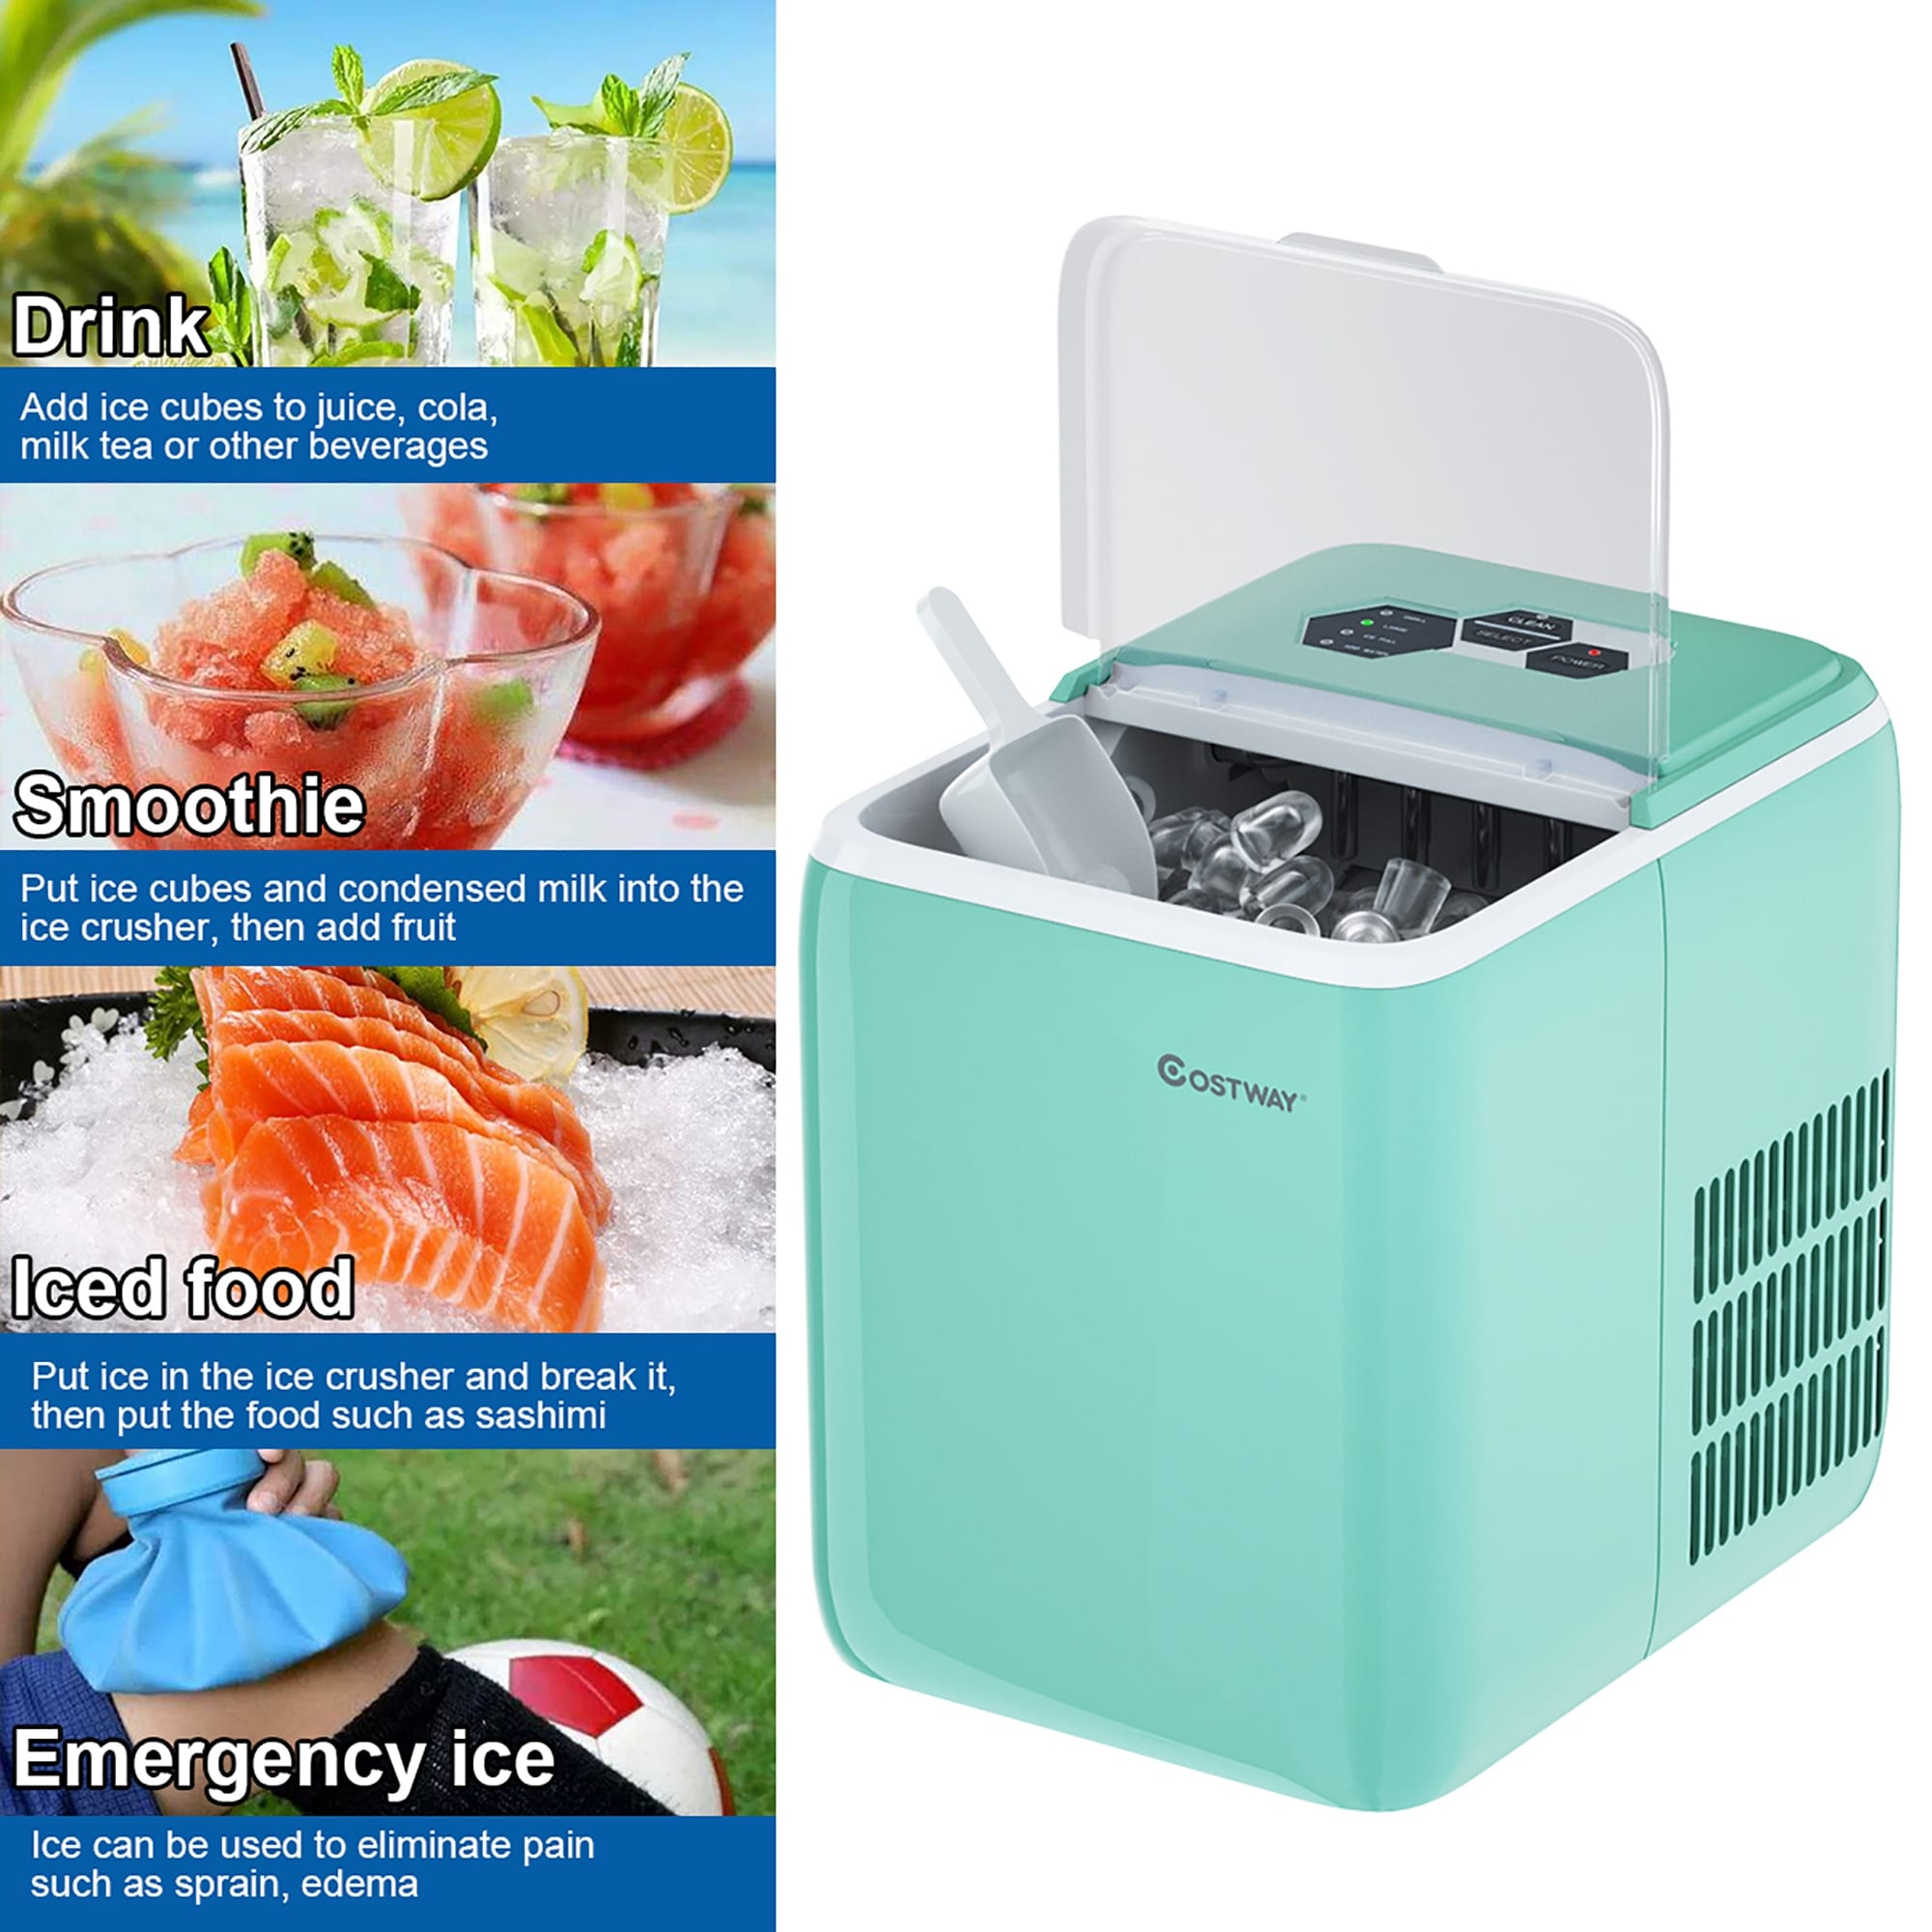 Costway Portable Countertop Ice Maker Machine 44lbs 24h Self Clean On Sale Overstock 29348503